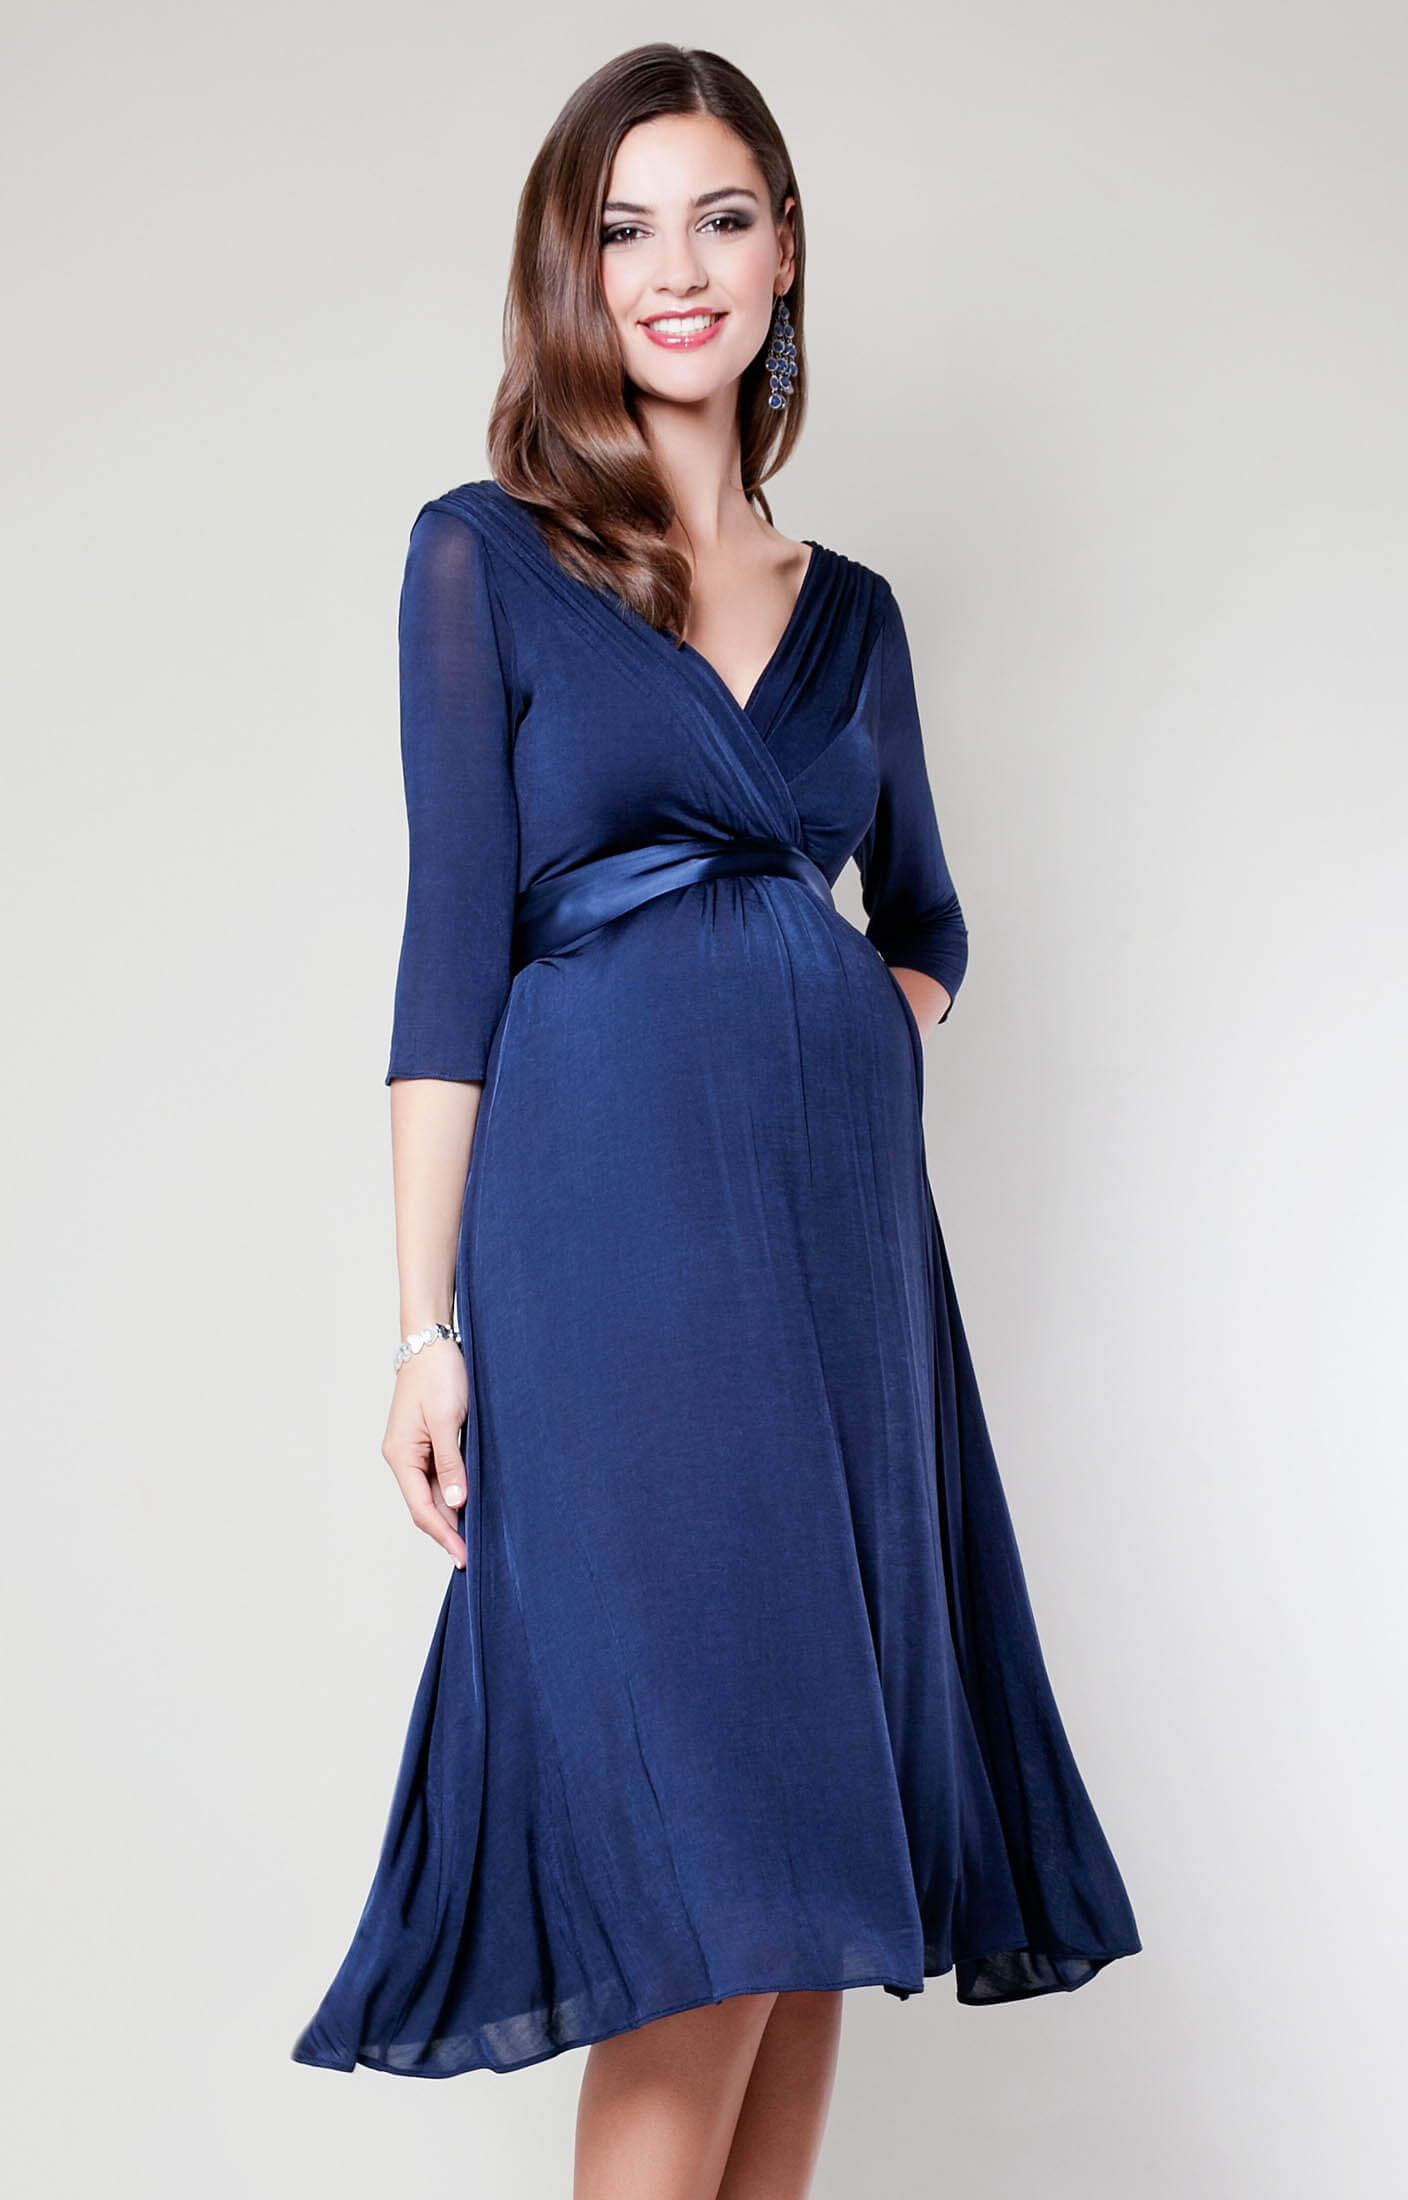 Willow maternity dress midnight blue maternity wedding for Wedding guest pregnancy dresses